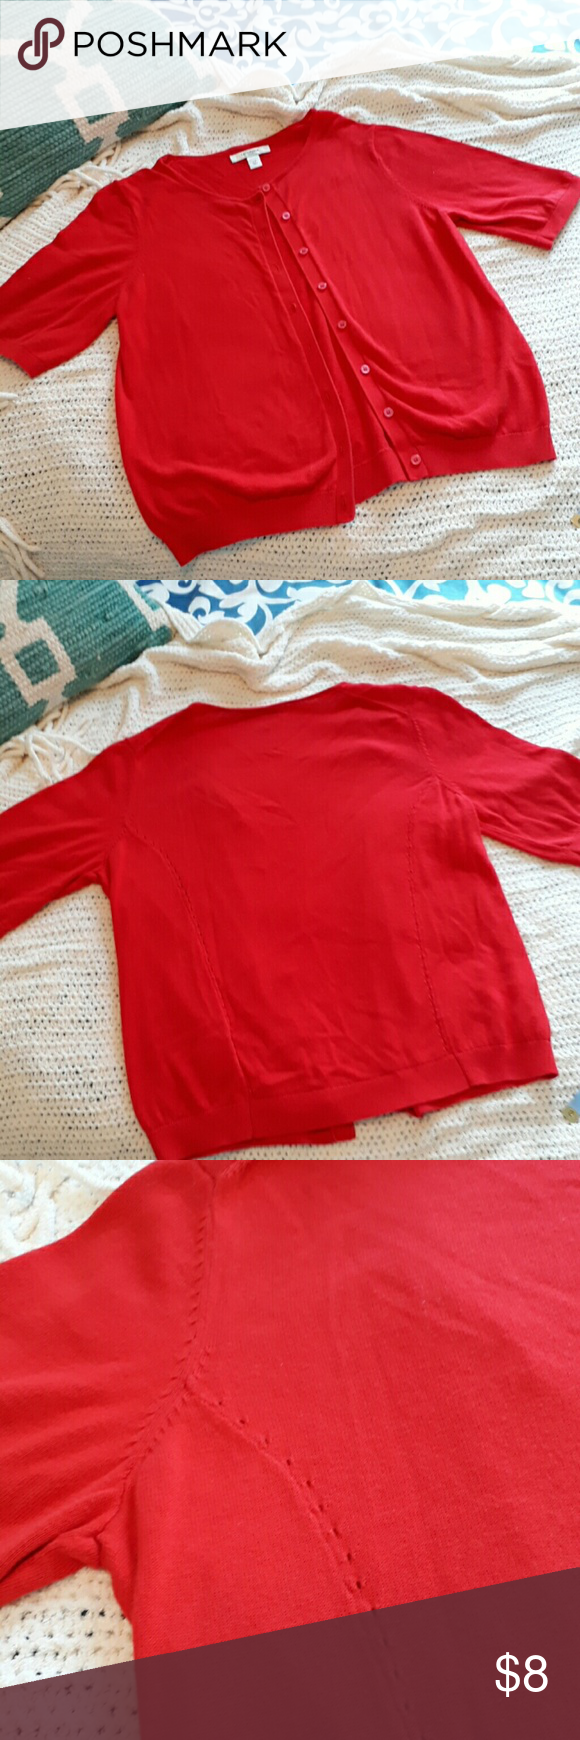 Liz Claiborne sweater | Liz claiborne, Red sweaters and Customer ...